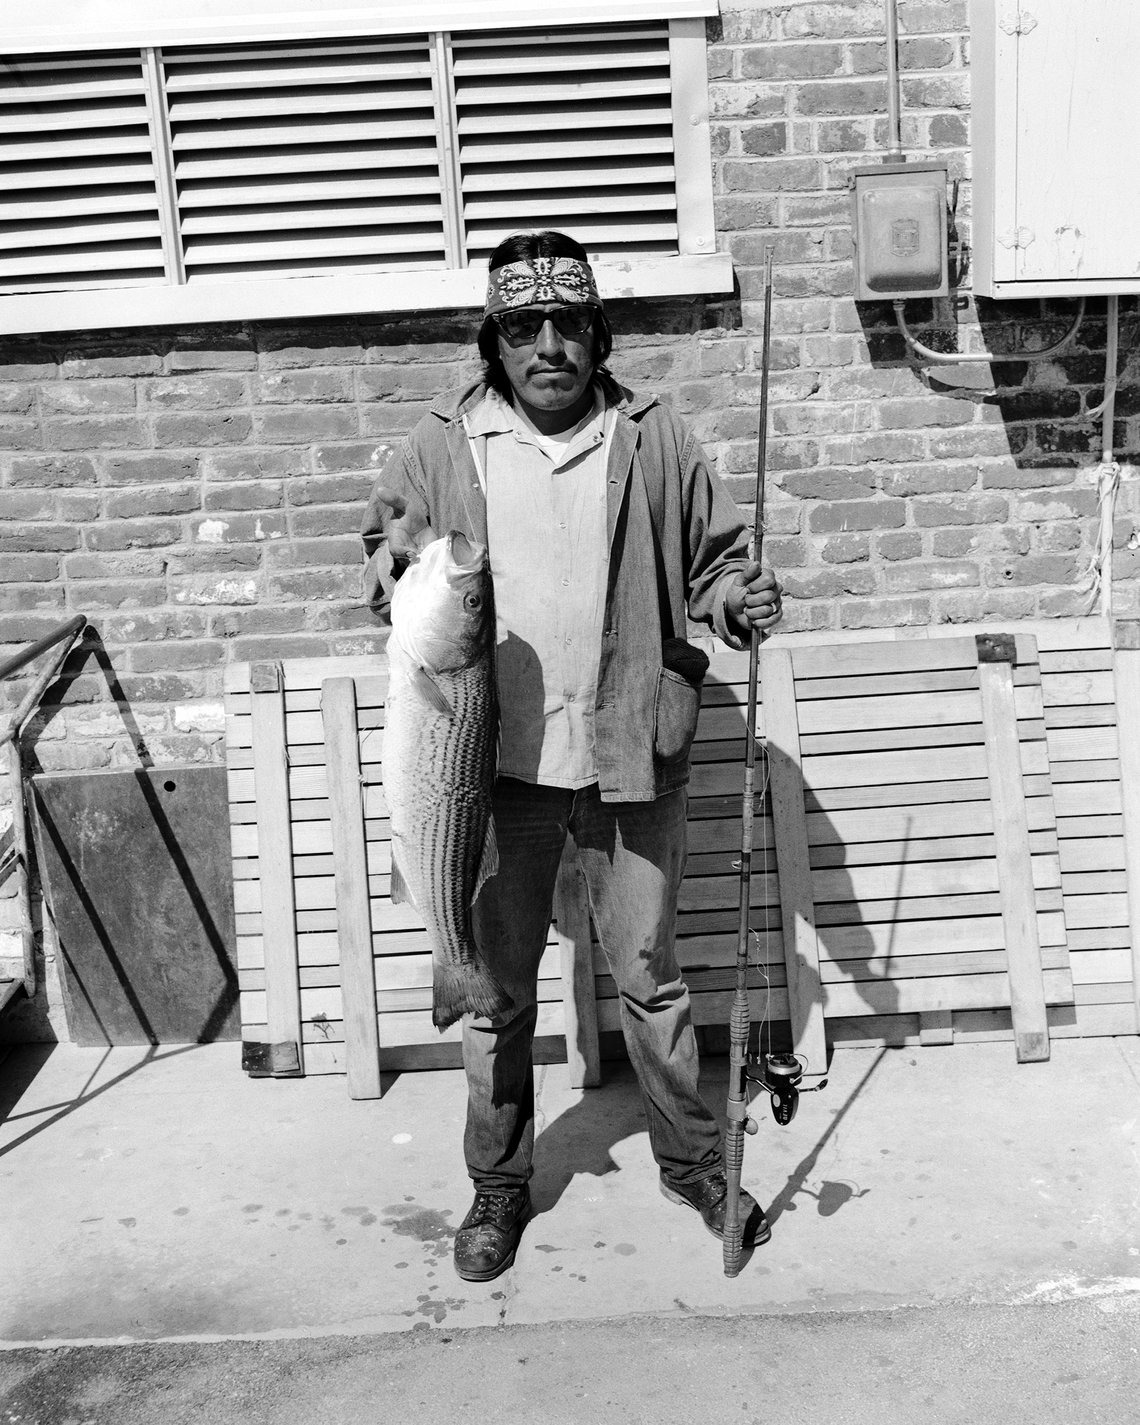 Fish Caught at Ranch, 9.17.75